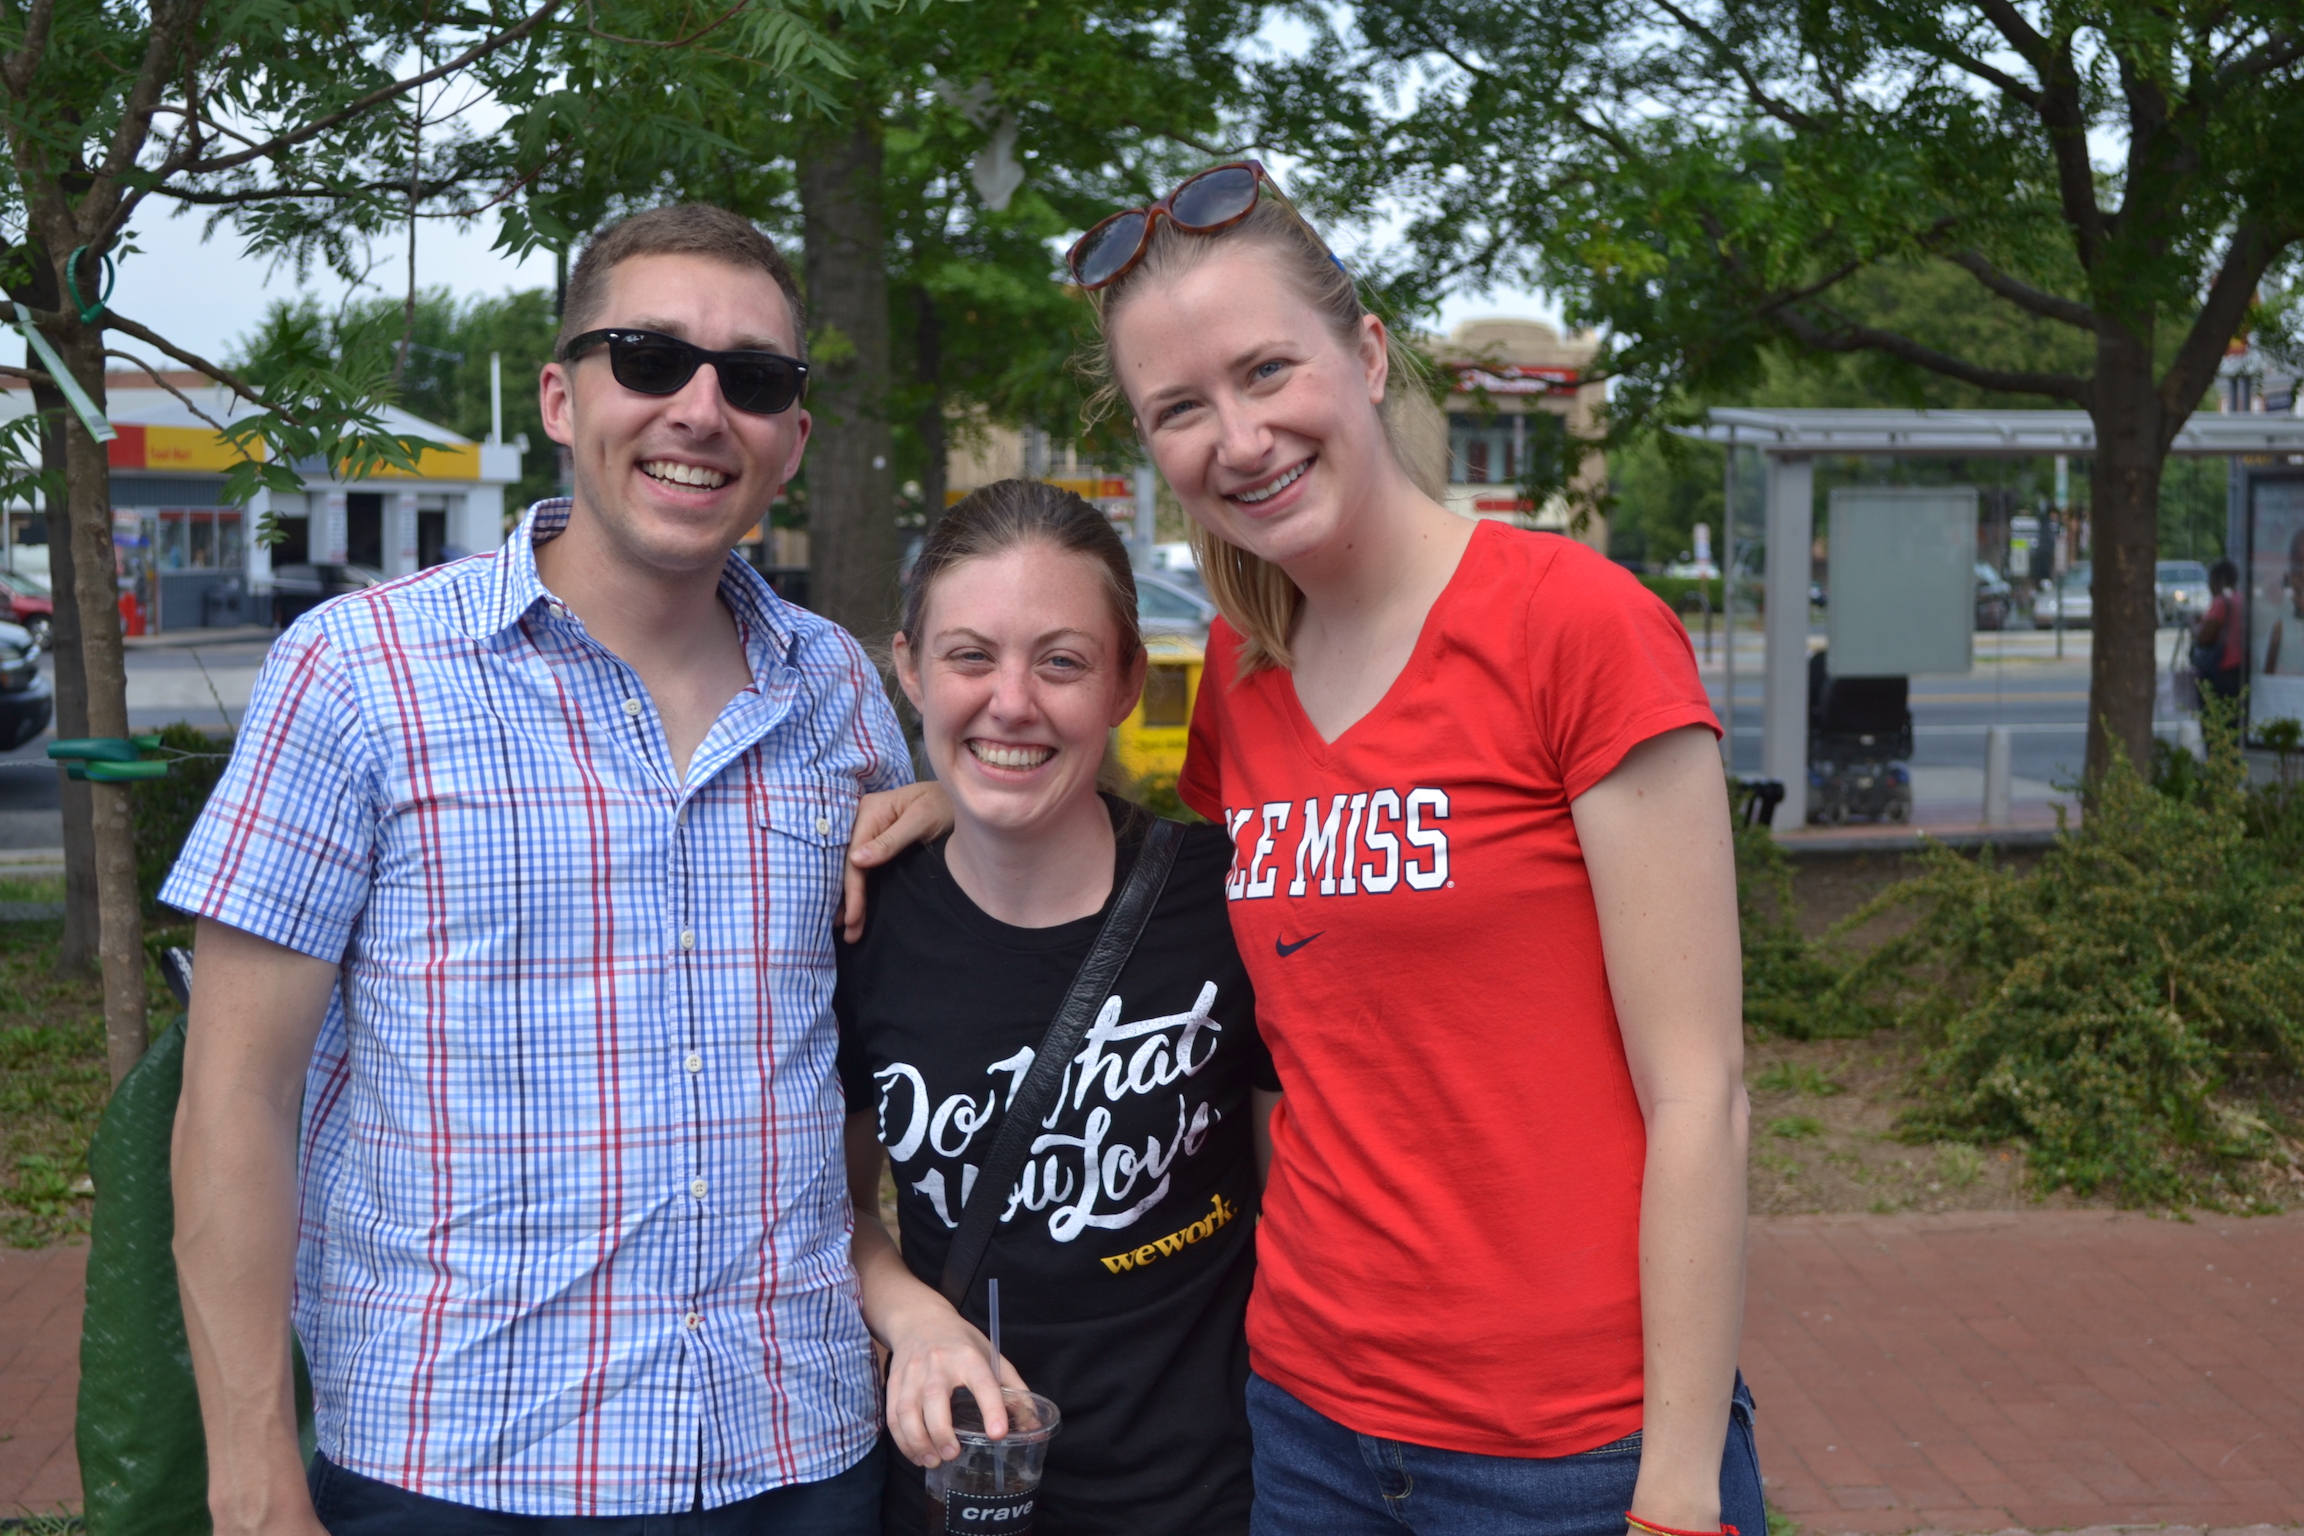 Allison Street residents Dan, Mary and Monica.